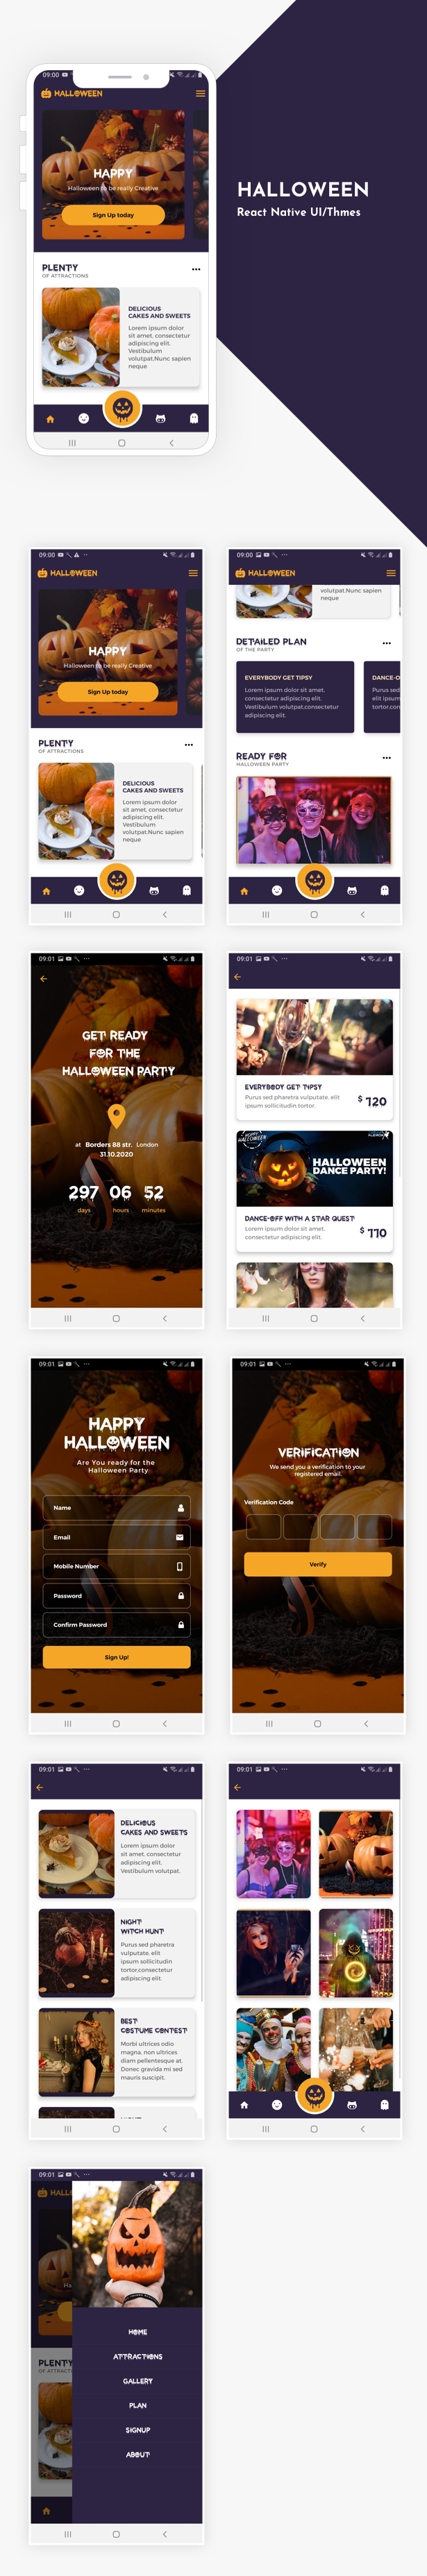 WDI+ Halloween Screen